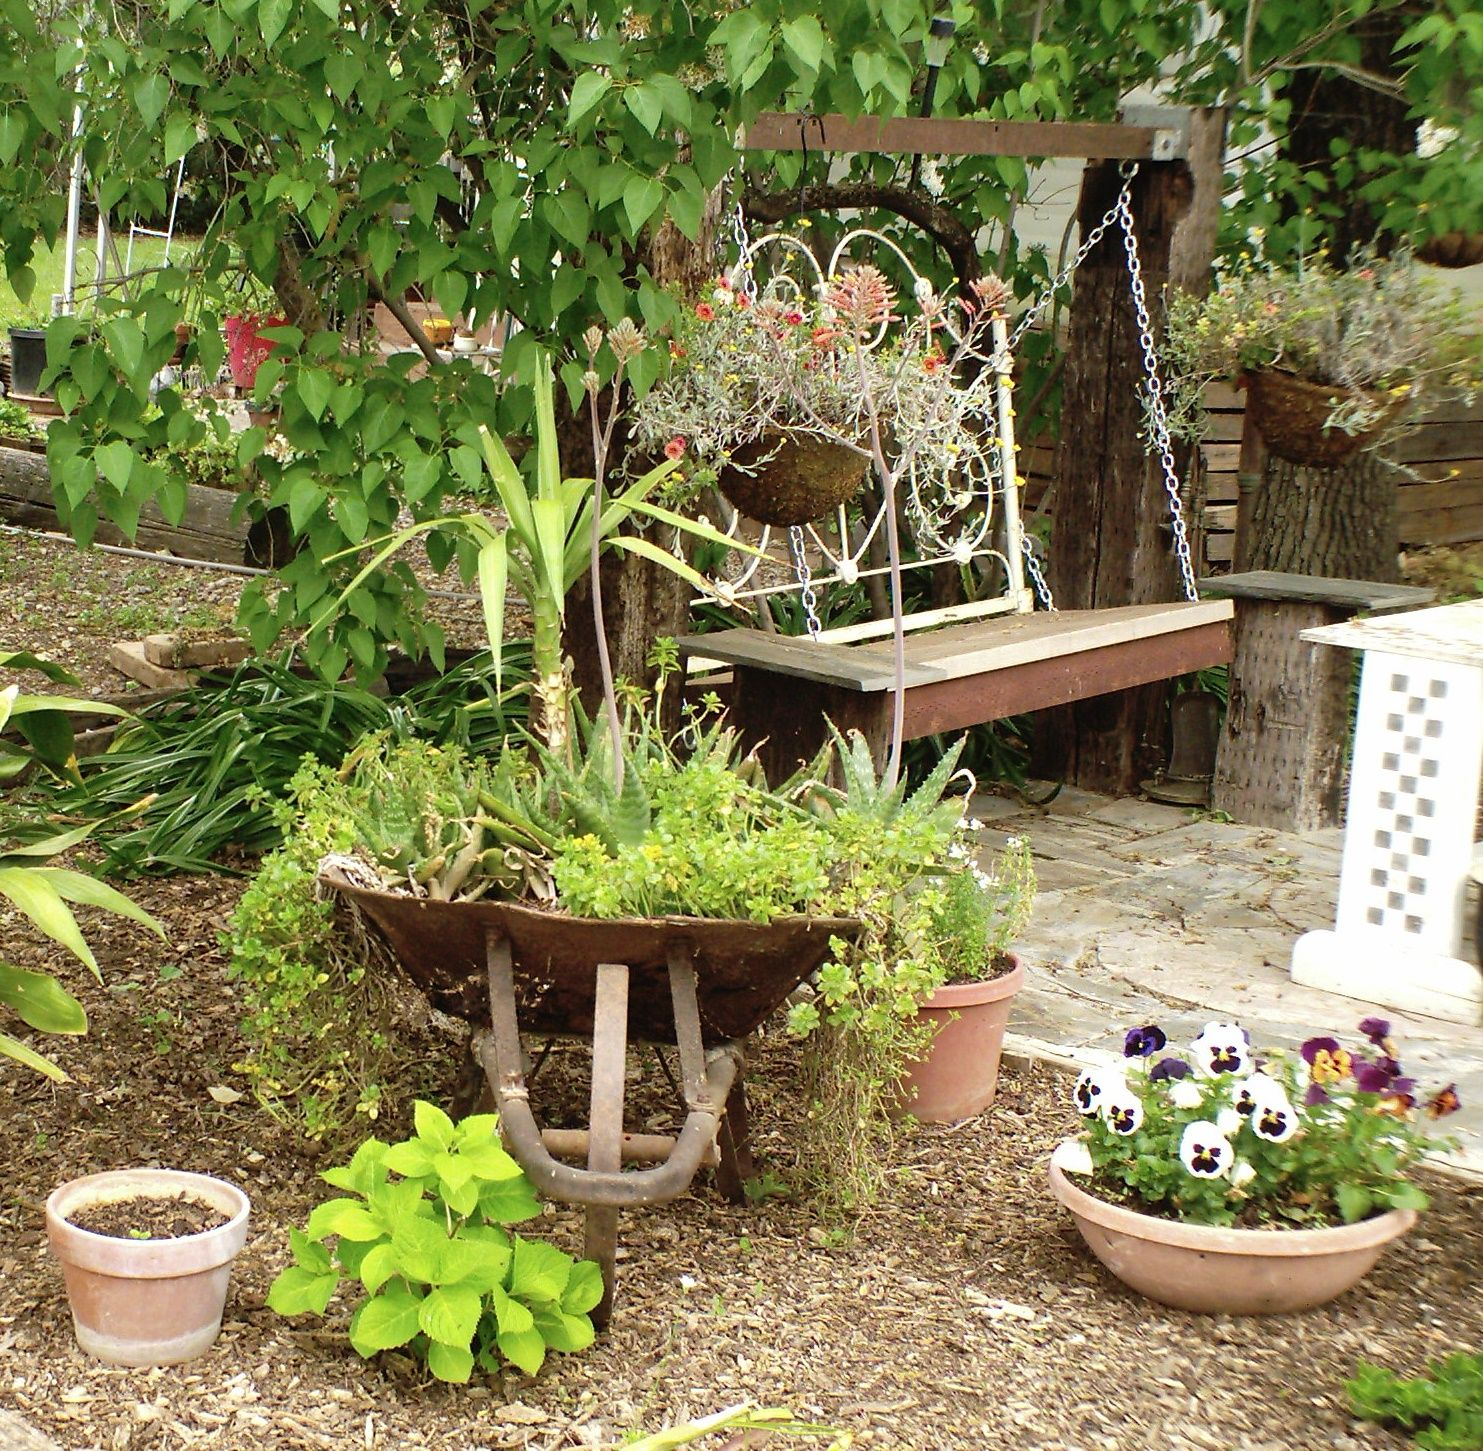 Lots of repurposing going on in this girls garden the swing ud an